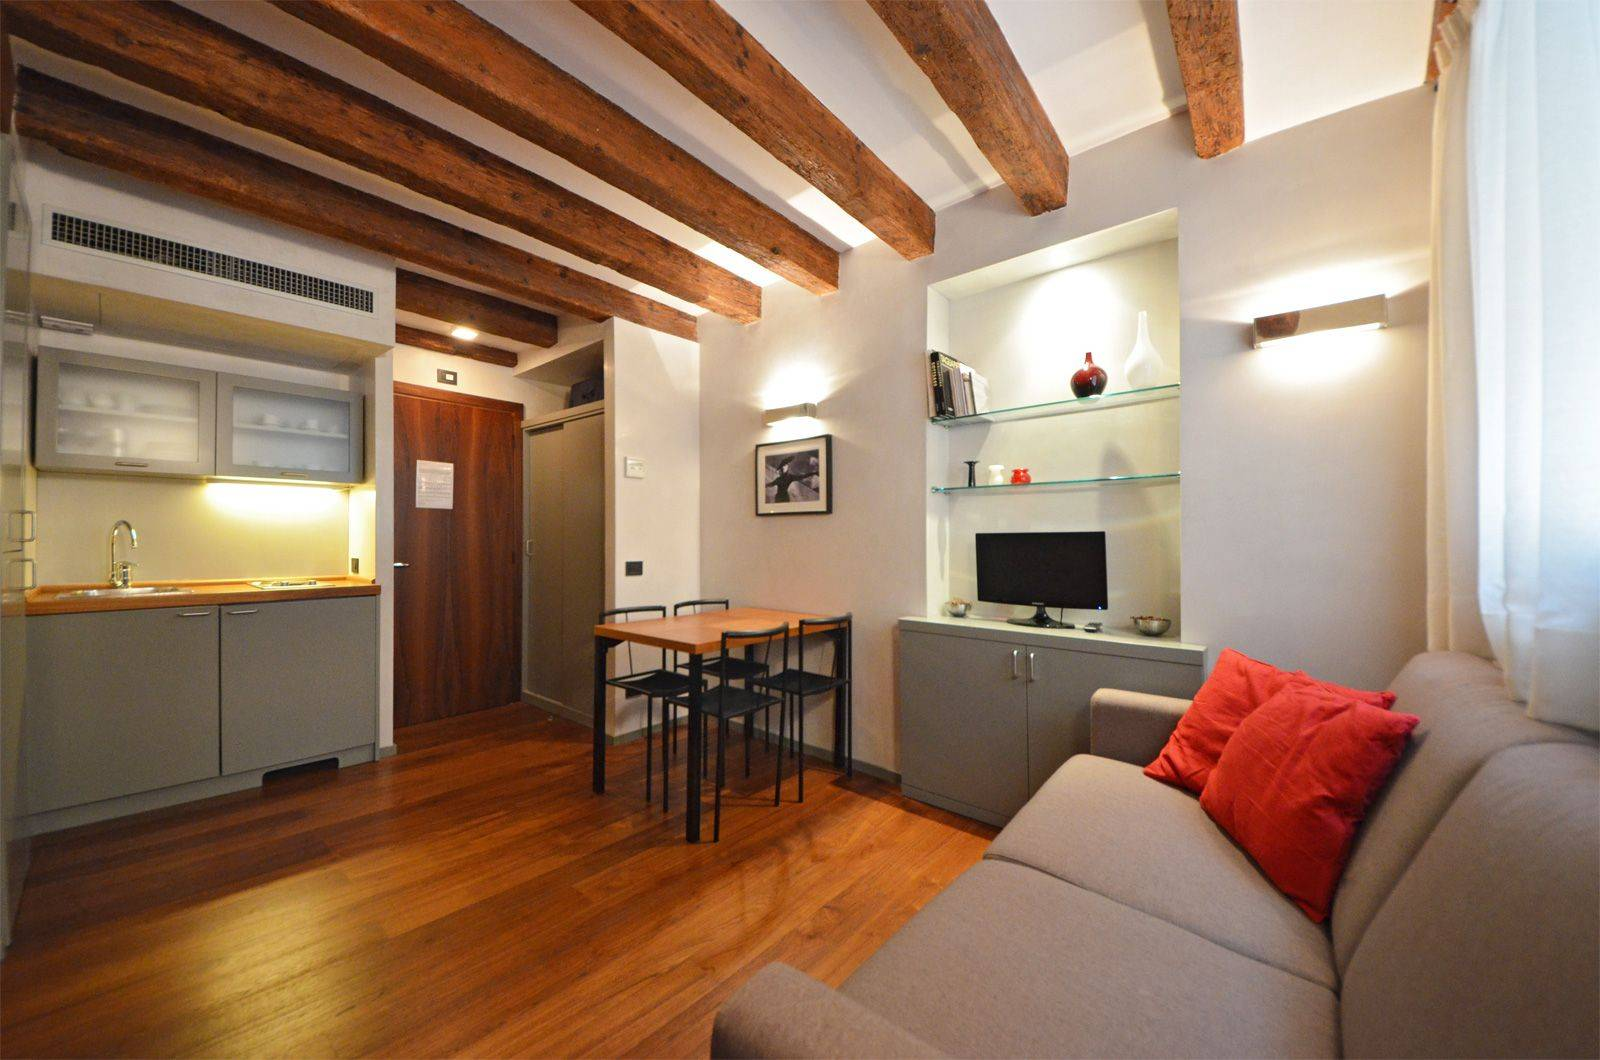 living room of the interconnecting studio apartment